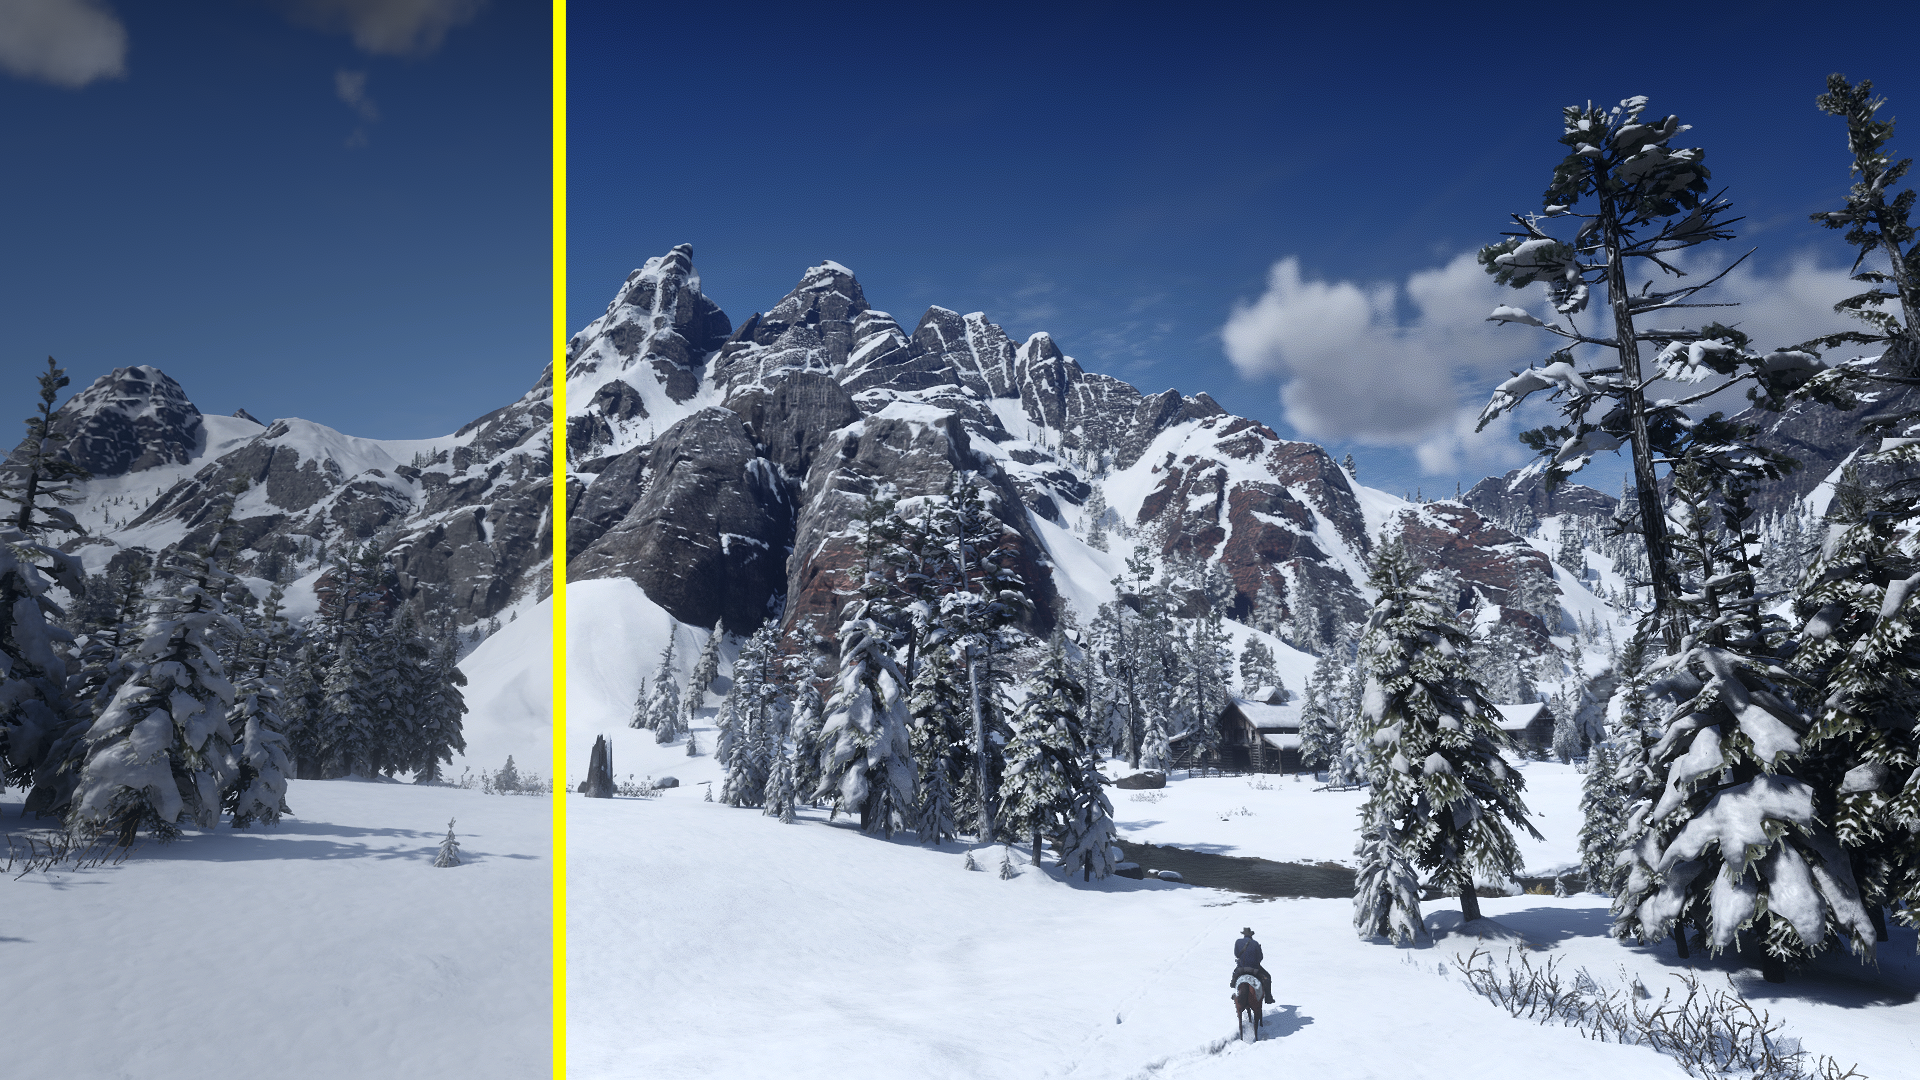 Filmic Clarity ReShade 3.0.1 - Performance Edition